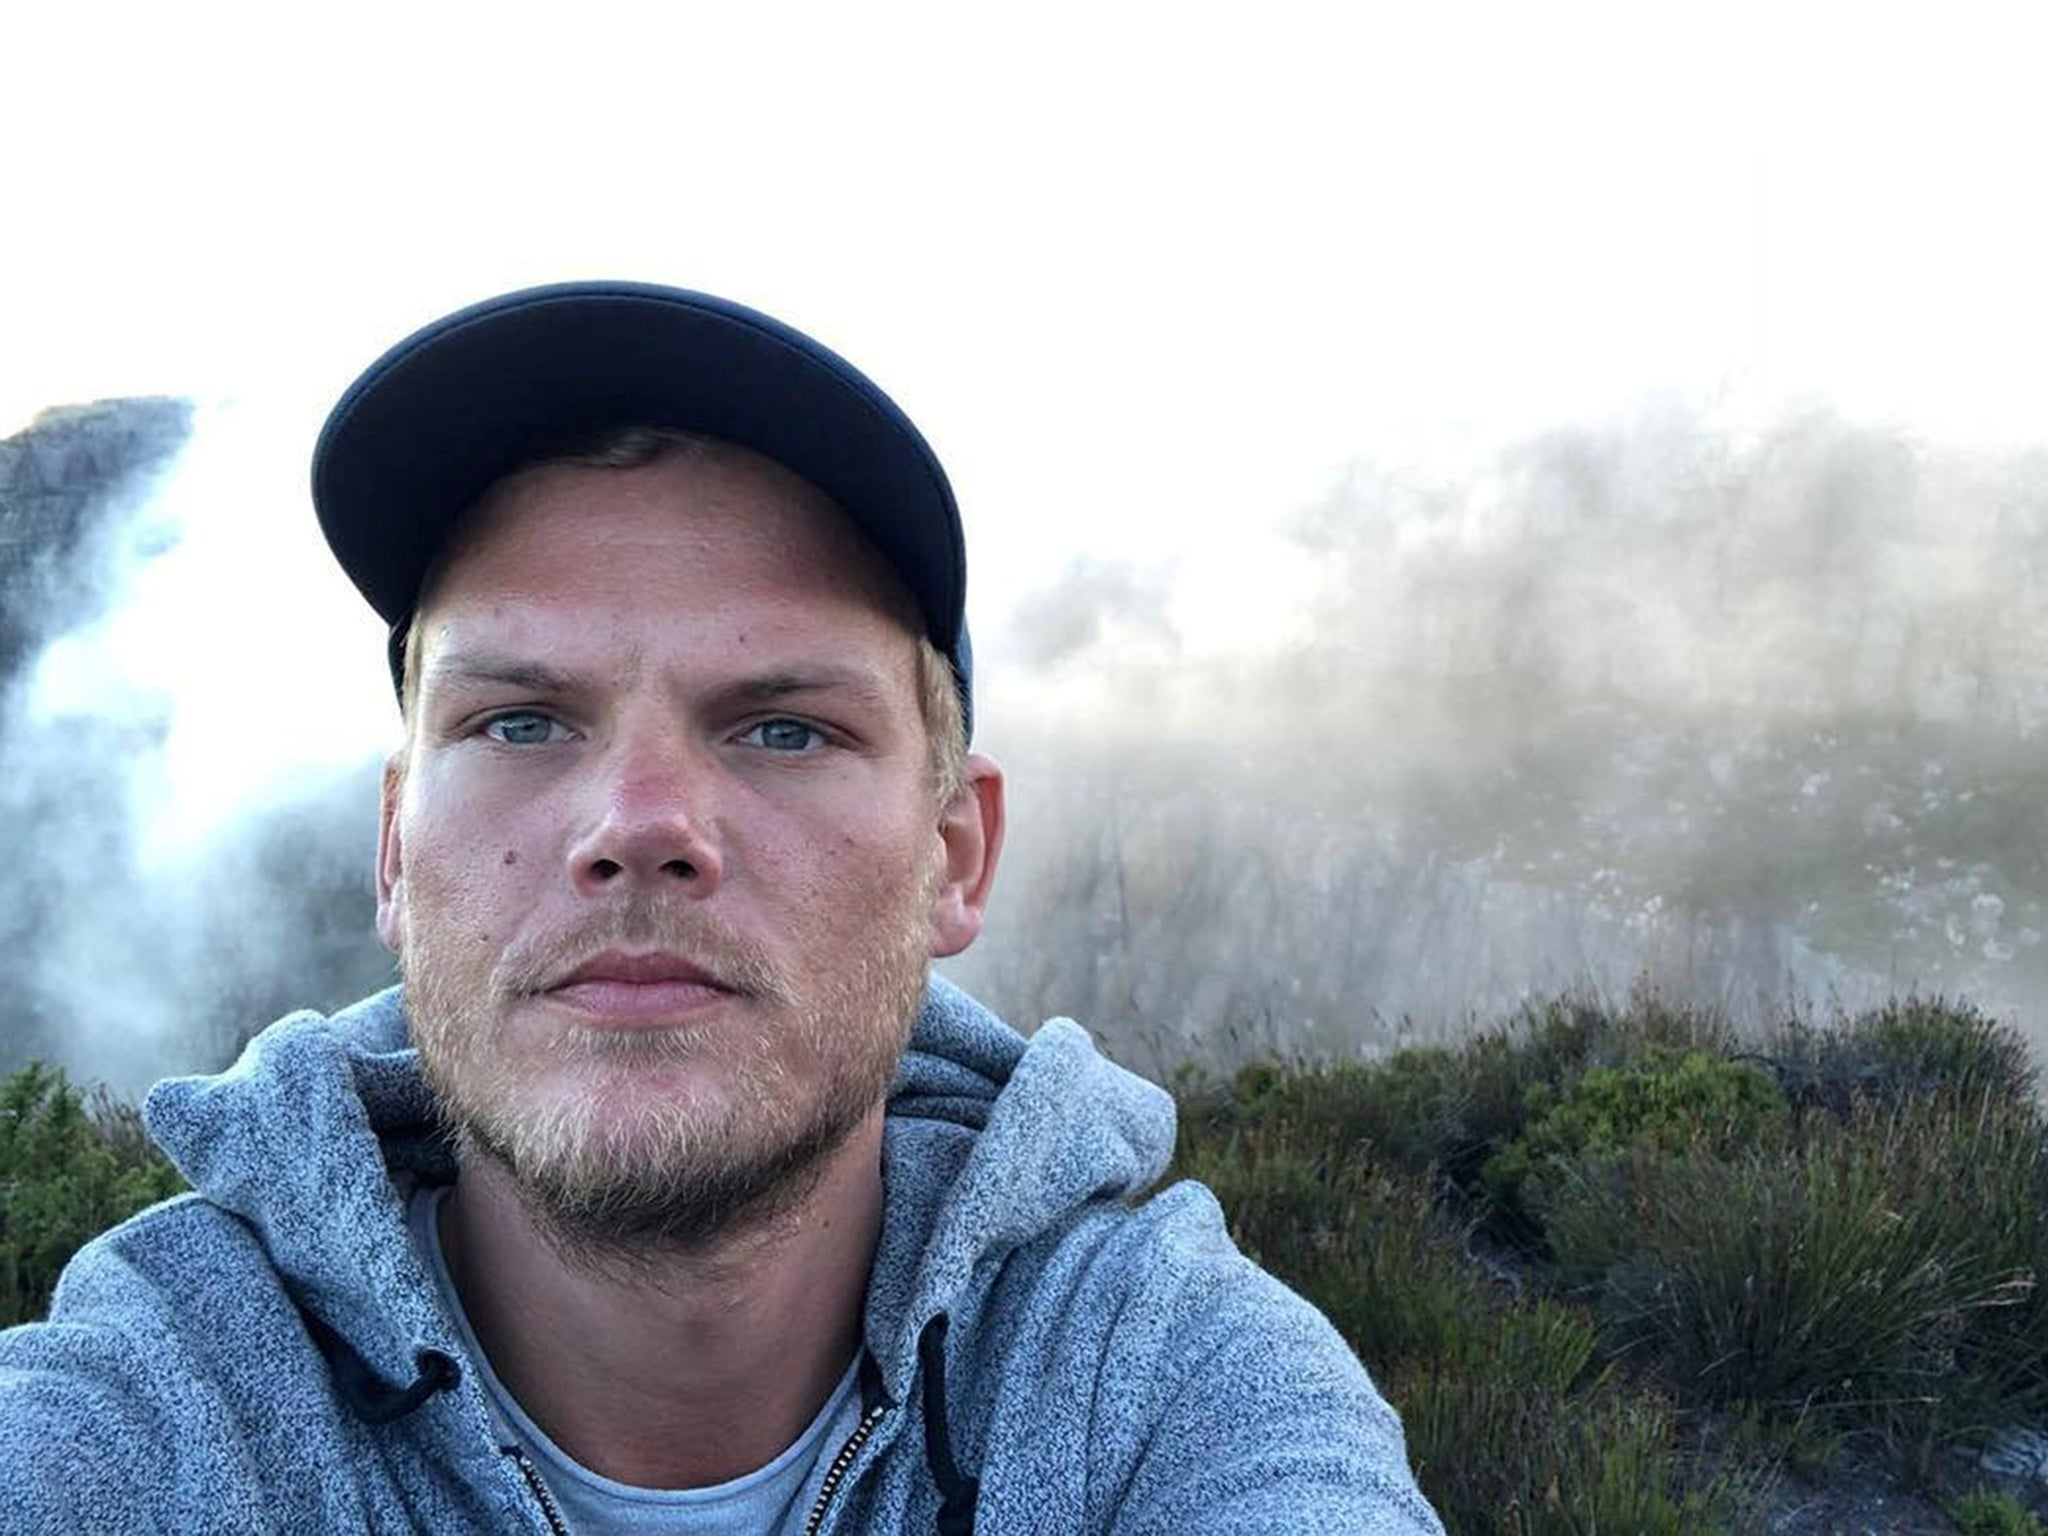 Avicii death: Electronic dance music DJ whose meteoric rise forced him to retire aged 26